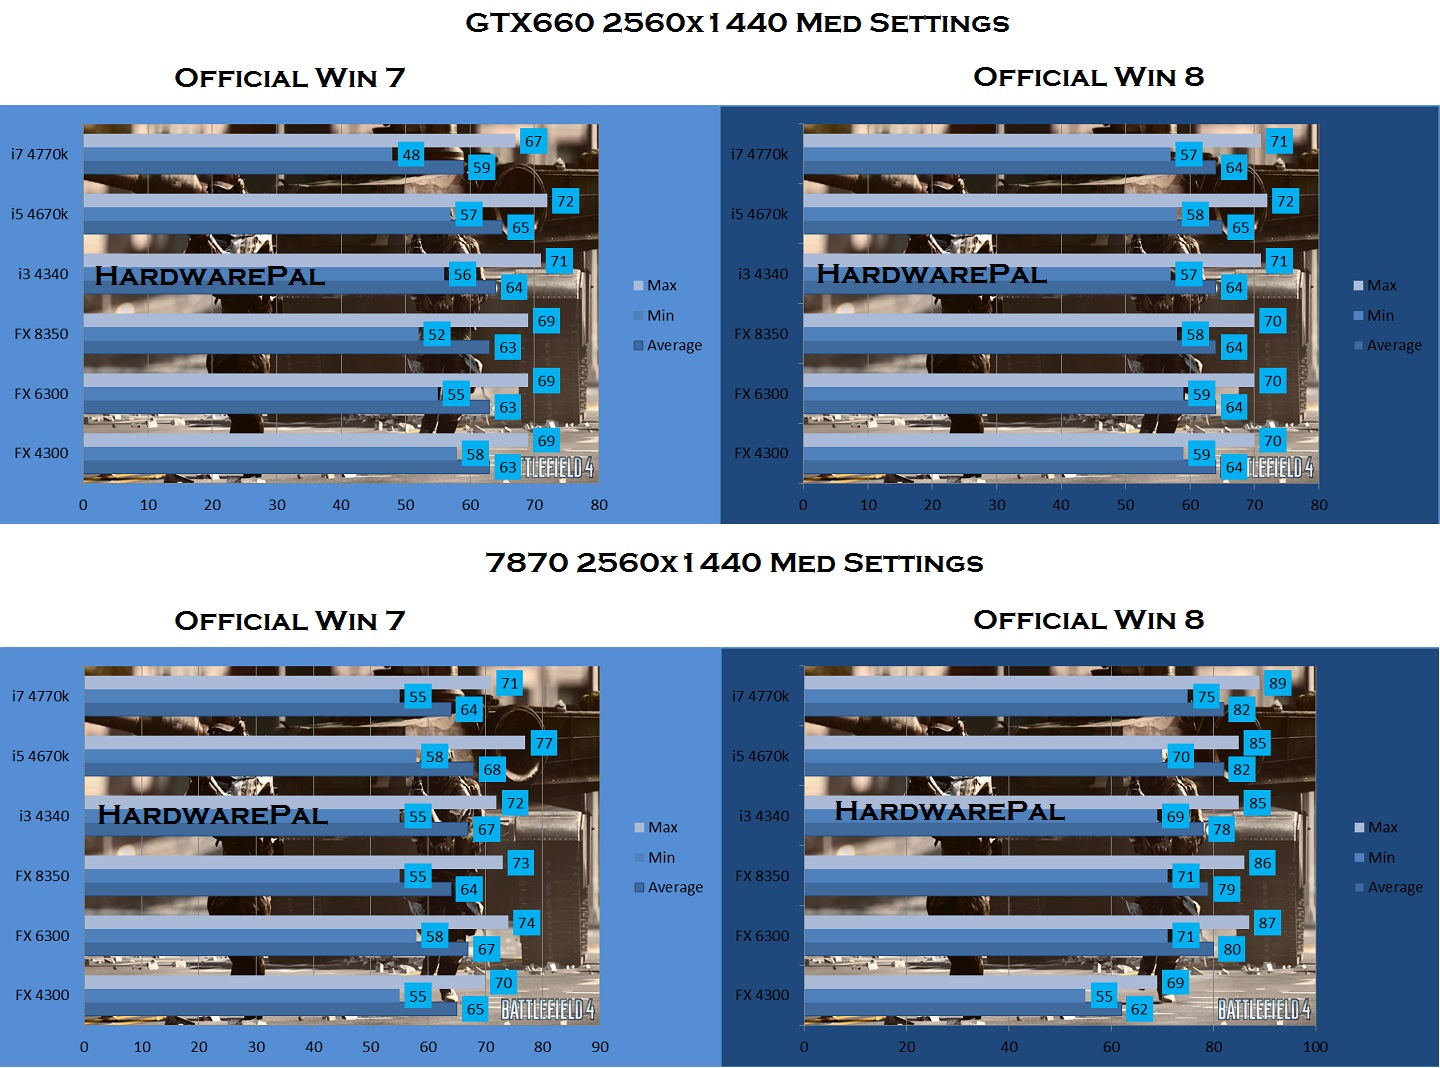 Battlefield 4 2560 x 1440, Medium Settings, GTX 660 vs 7870